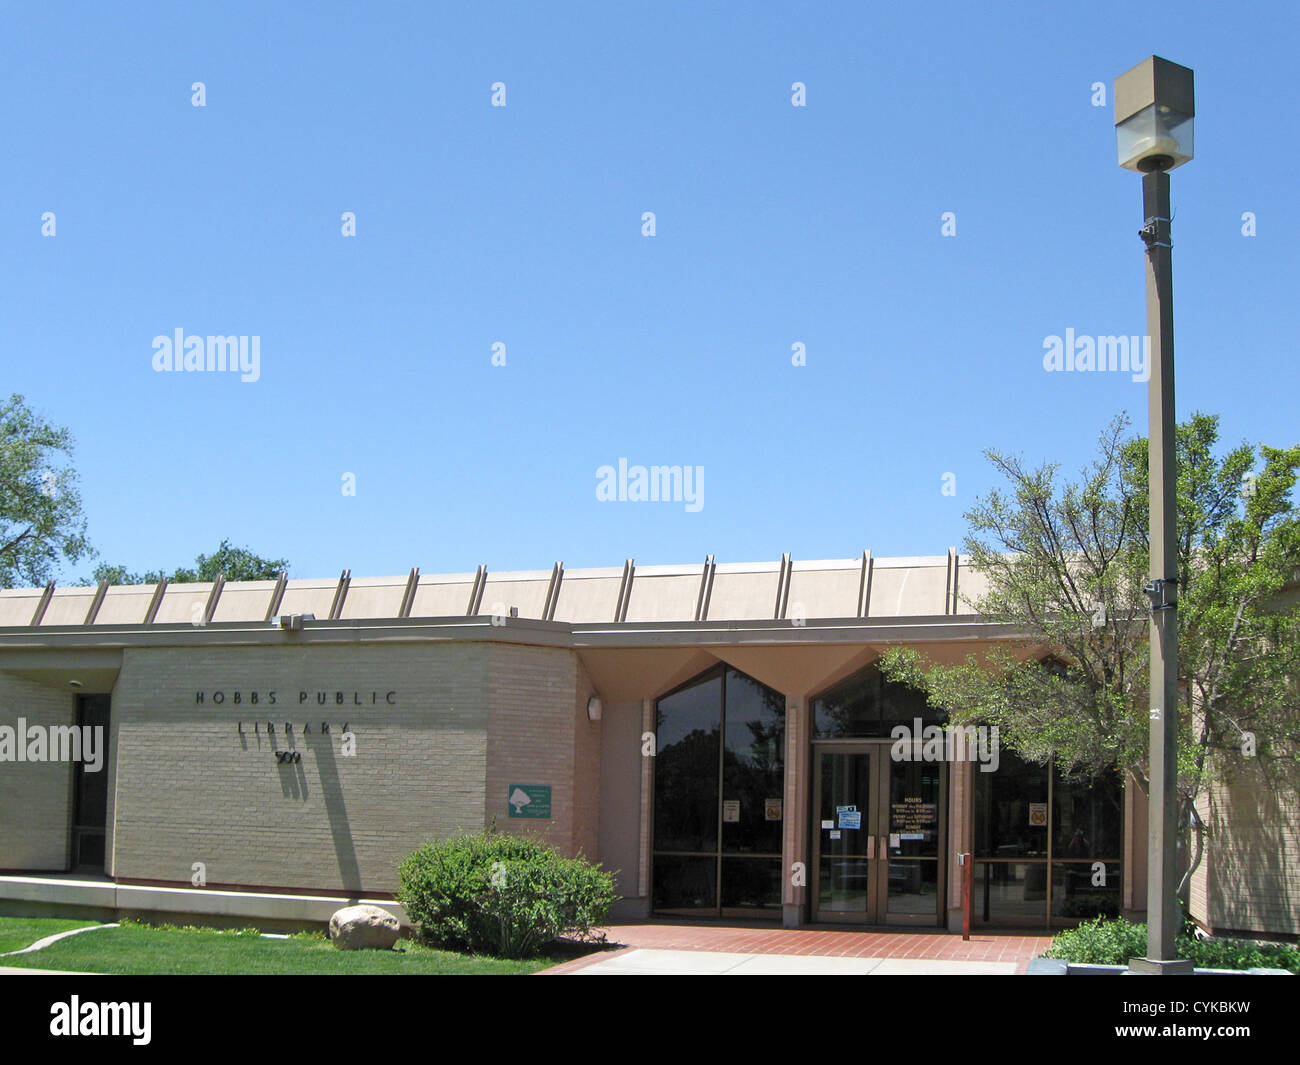 Hobbs (New Mexico) Public Library, located at 509 N. Shipp in Hobbs, New Mexico. - Stock Image